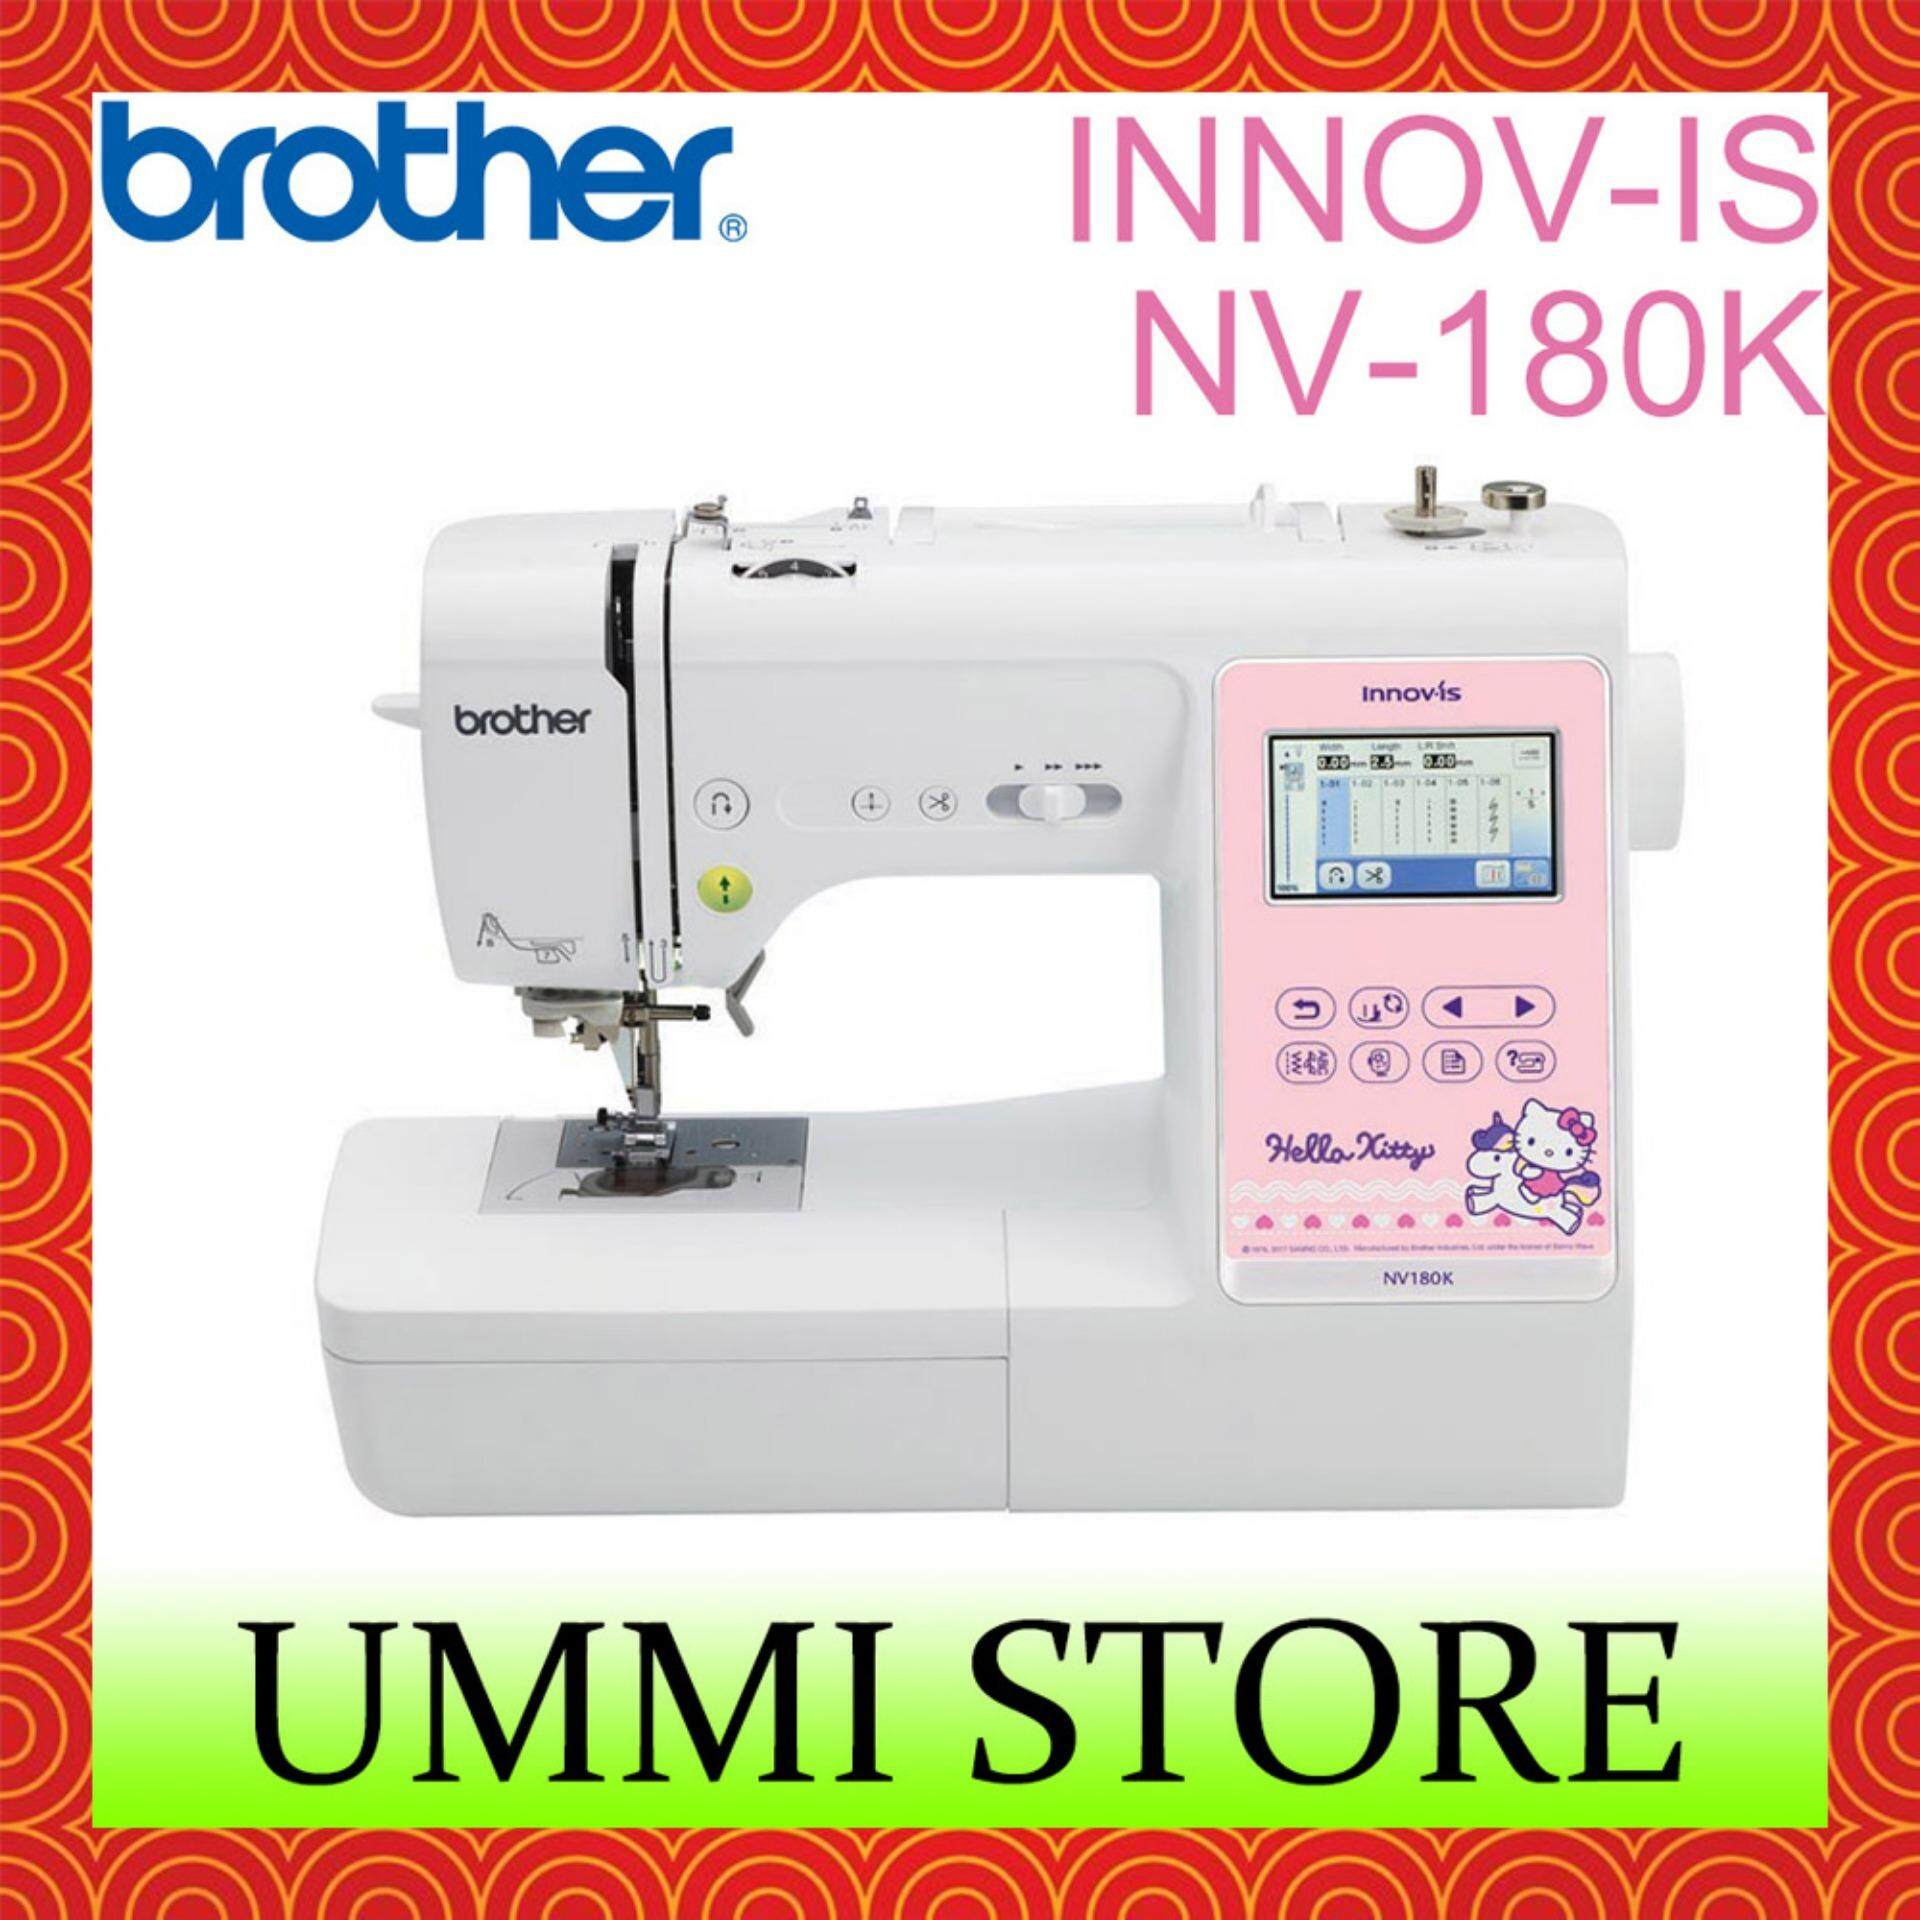 Brother INNOV-IS NV-180K Hello Kitty Sewing & Embroidery Machine